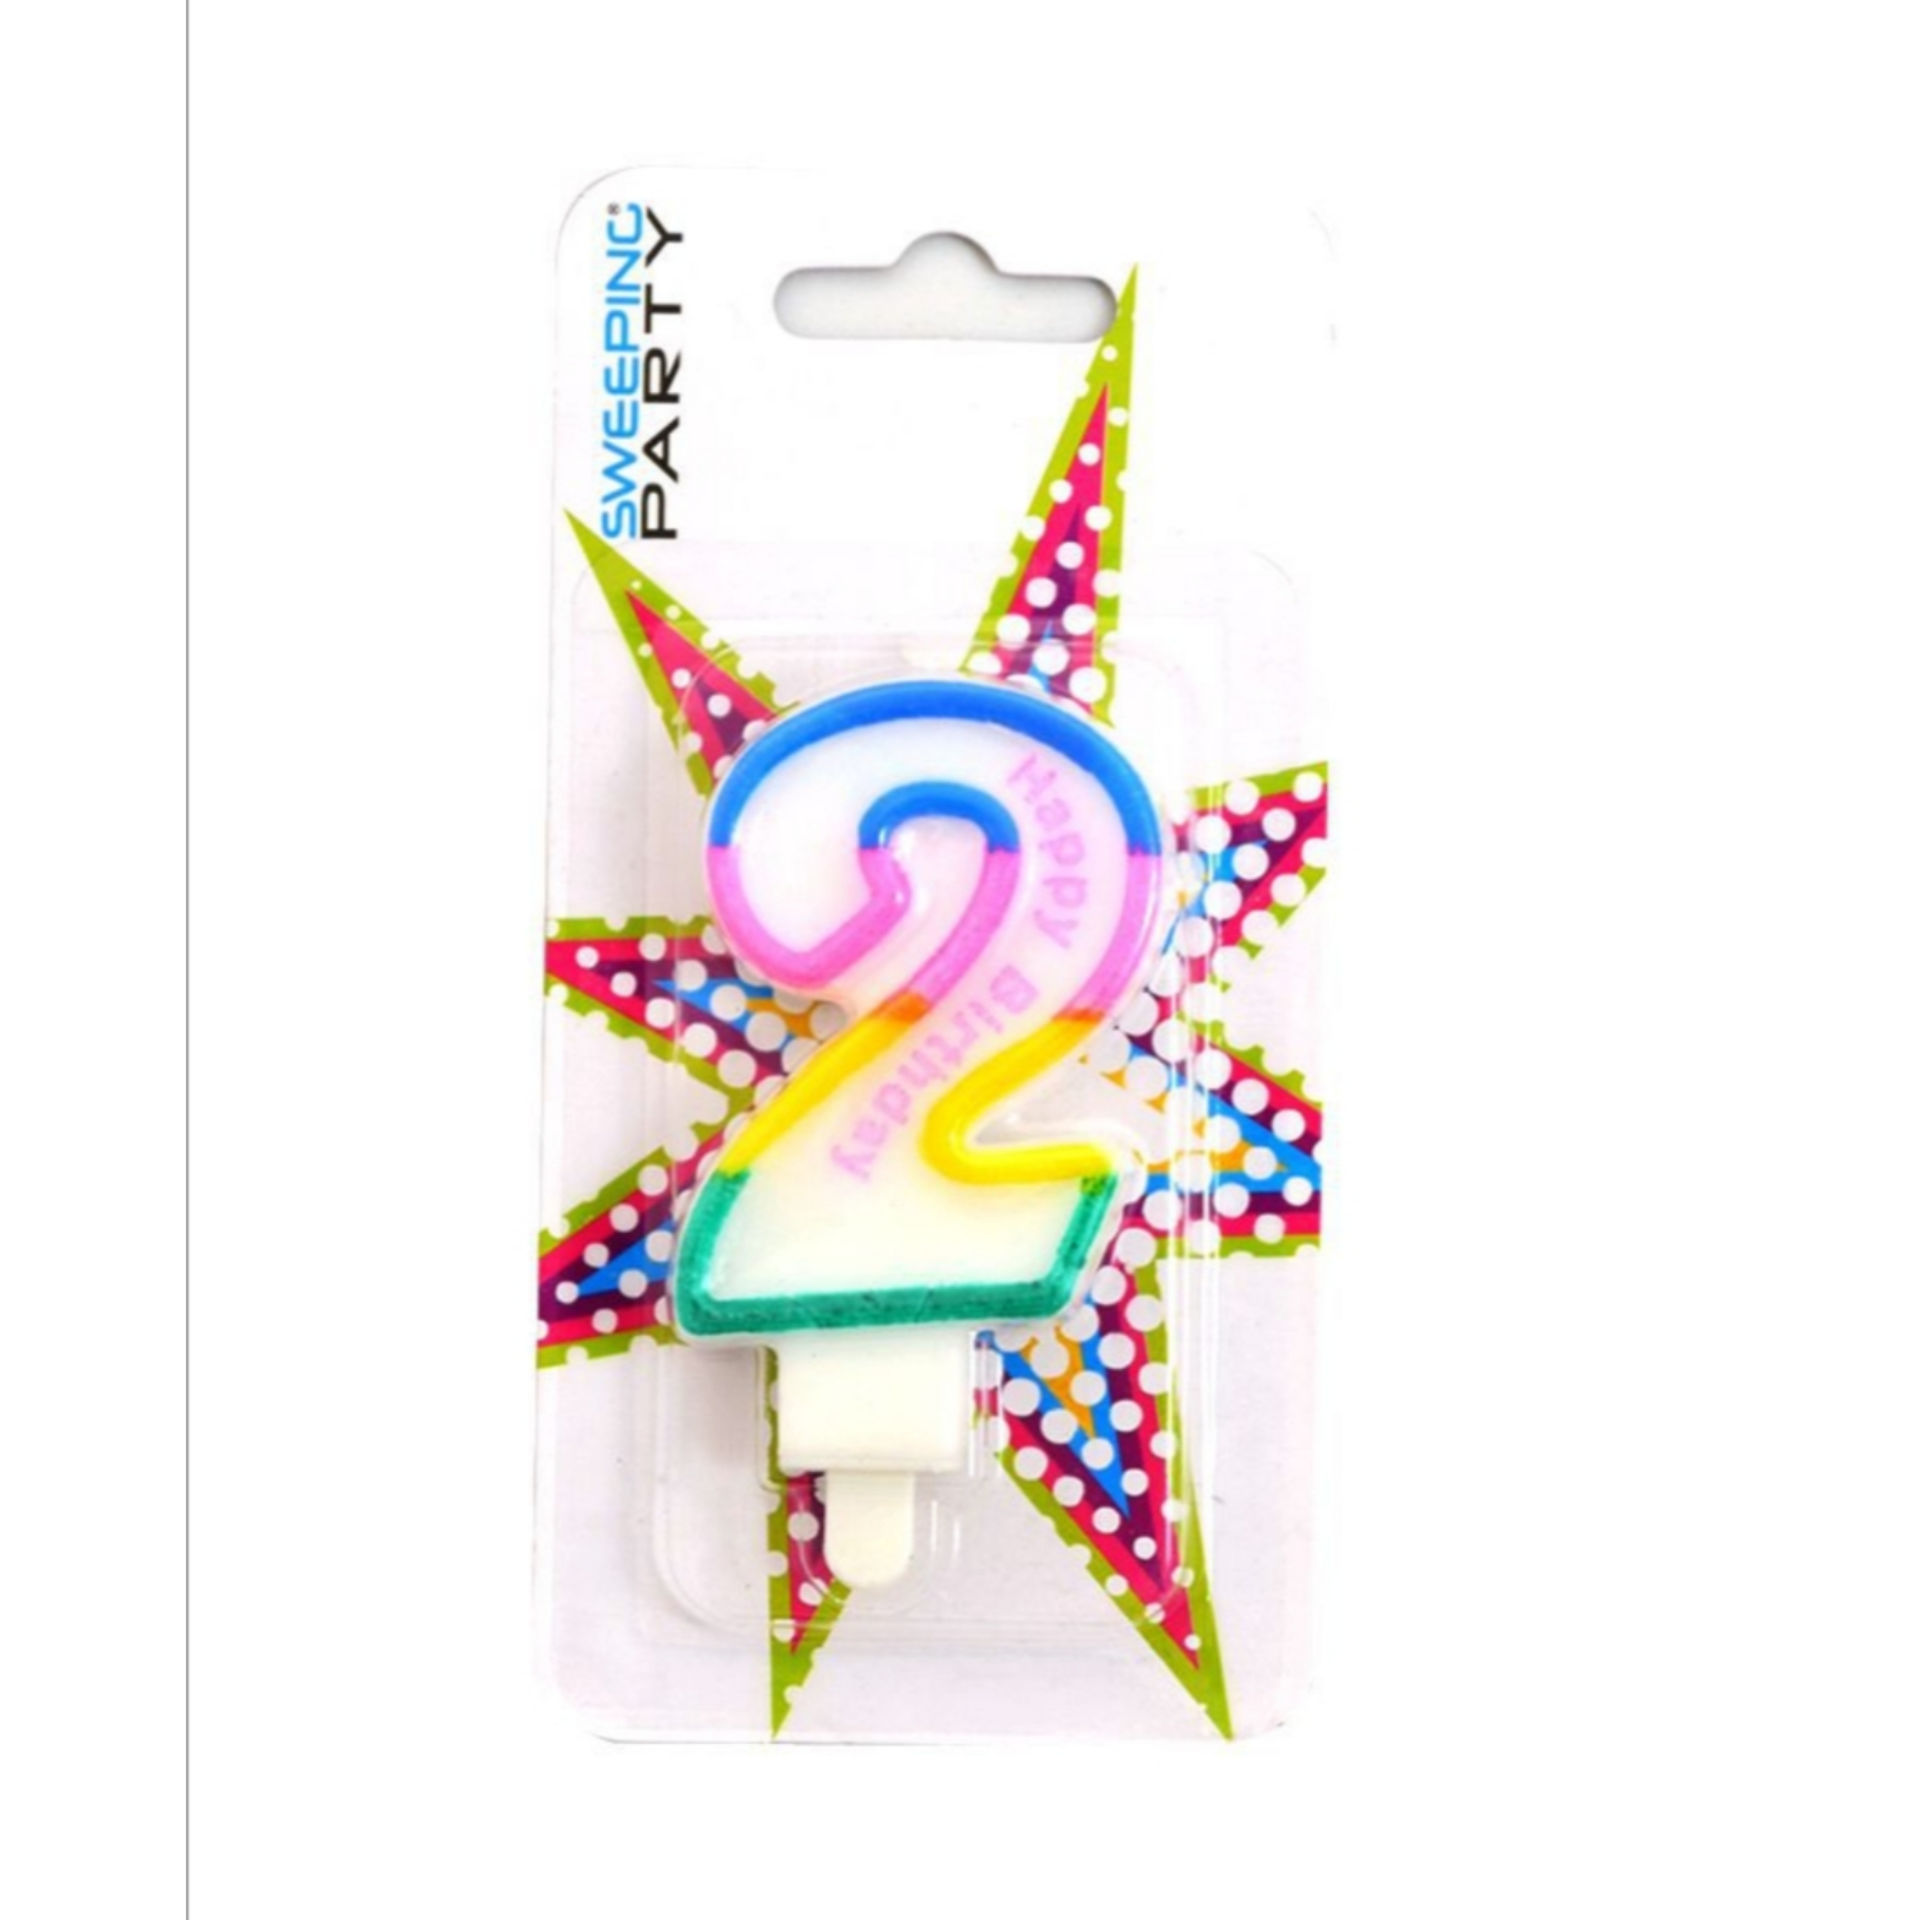 CANDELINA MULTICOLORE HAPPY BIRTHDAY N.2Sweeping Party